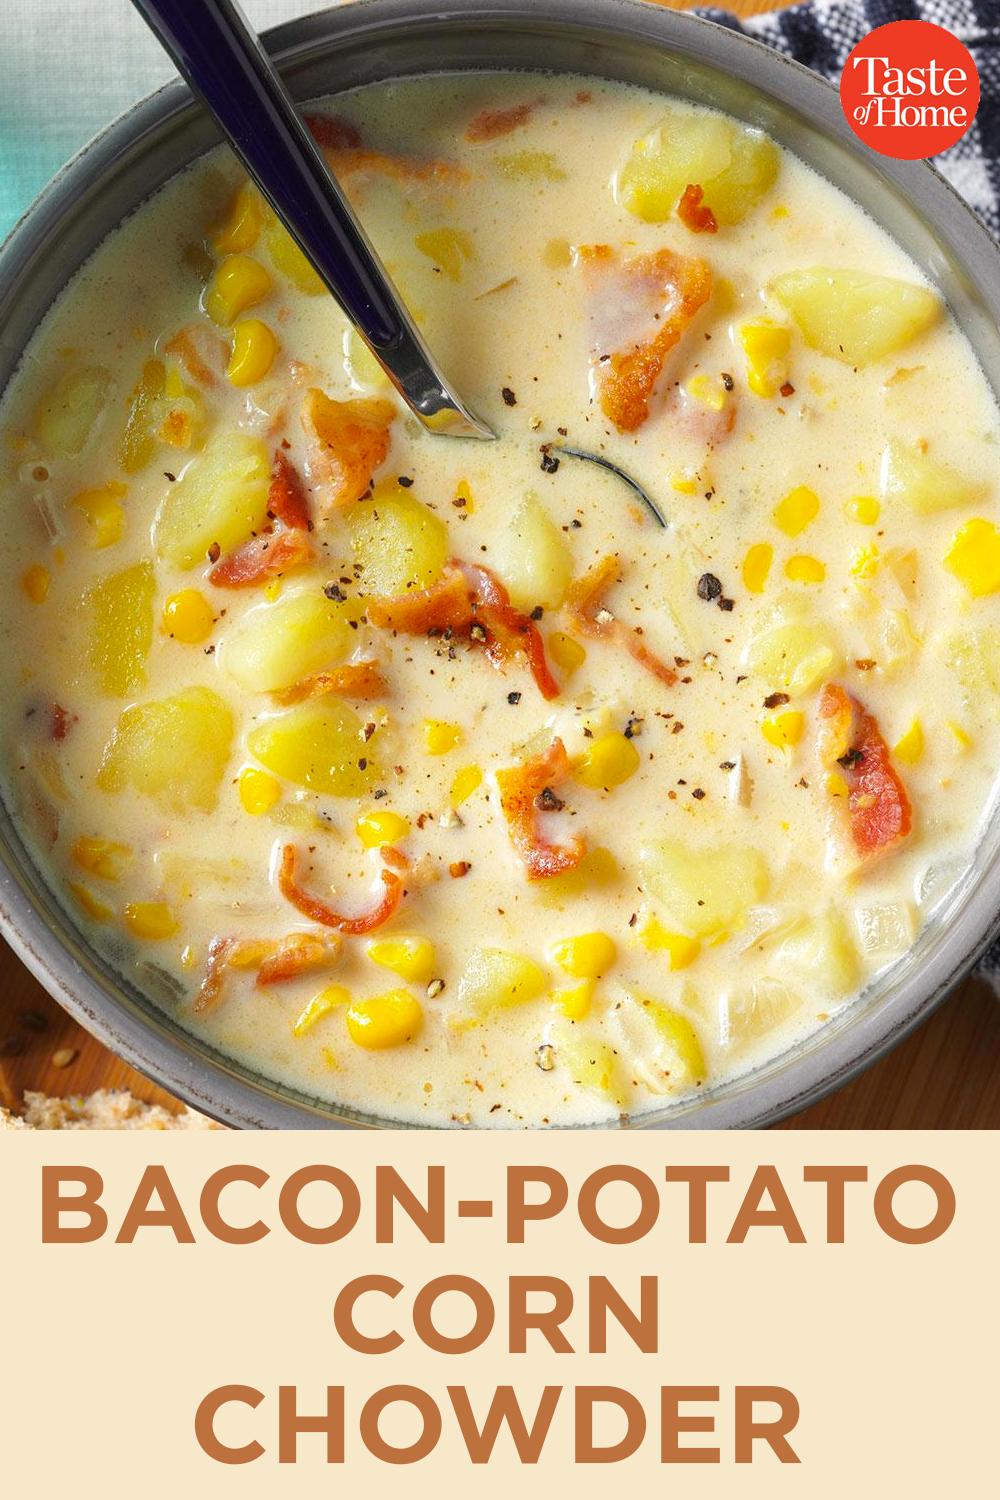 Bacon-Potato Corn Chowder